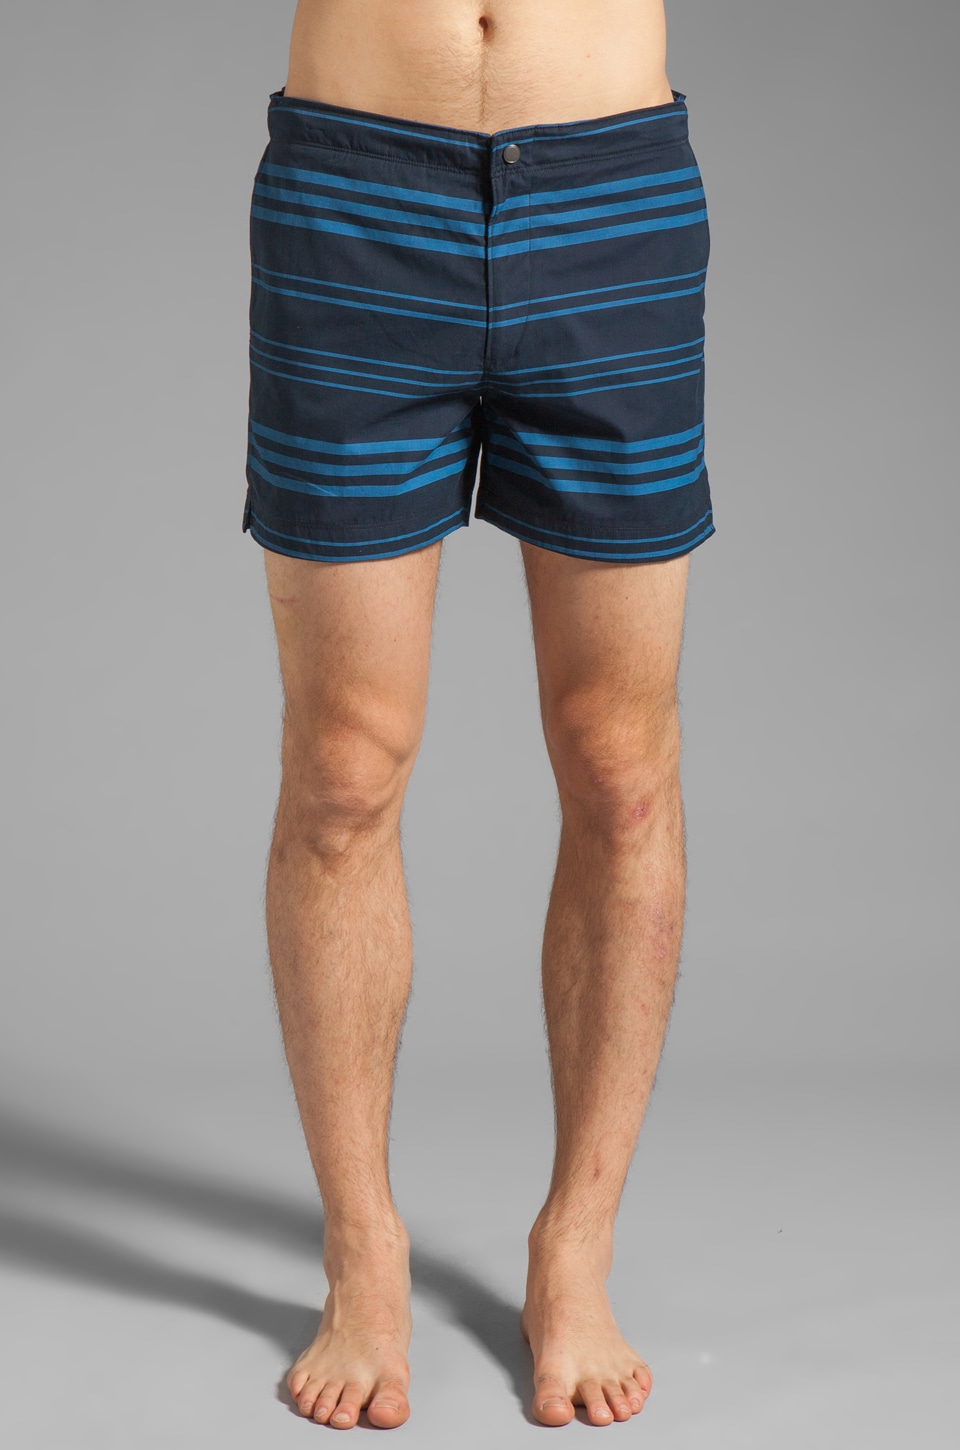 Theory Kahana Kosmor ST Short in Eclipse Stripe